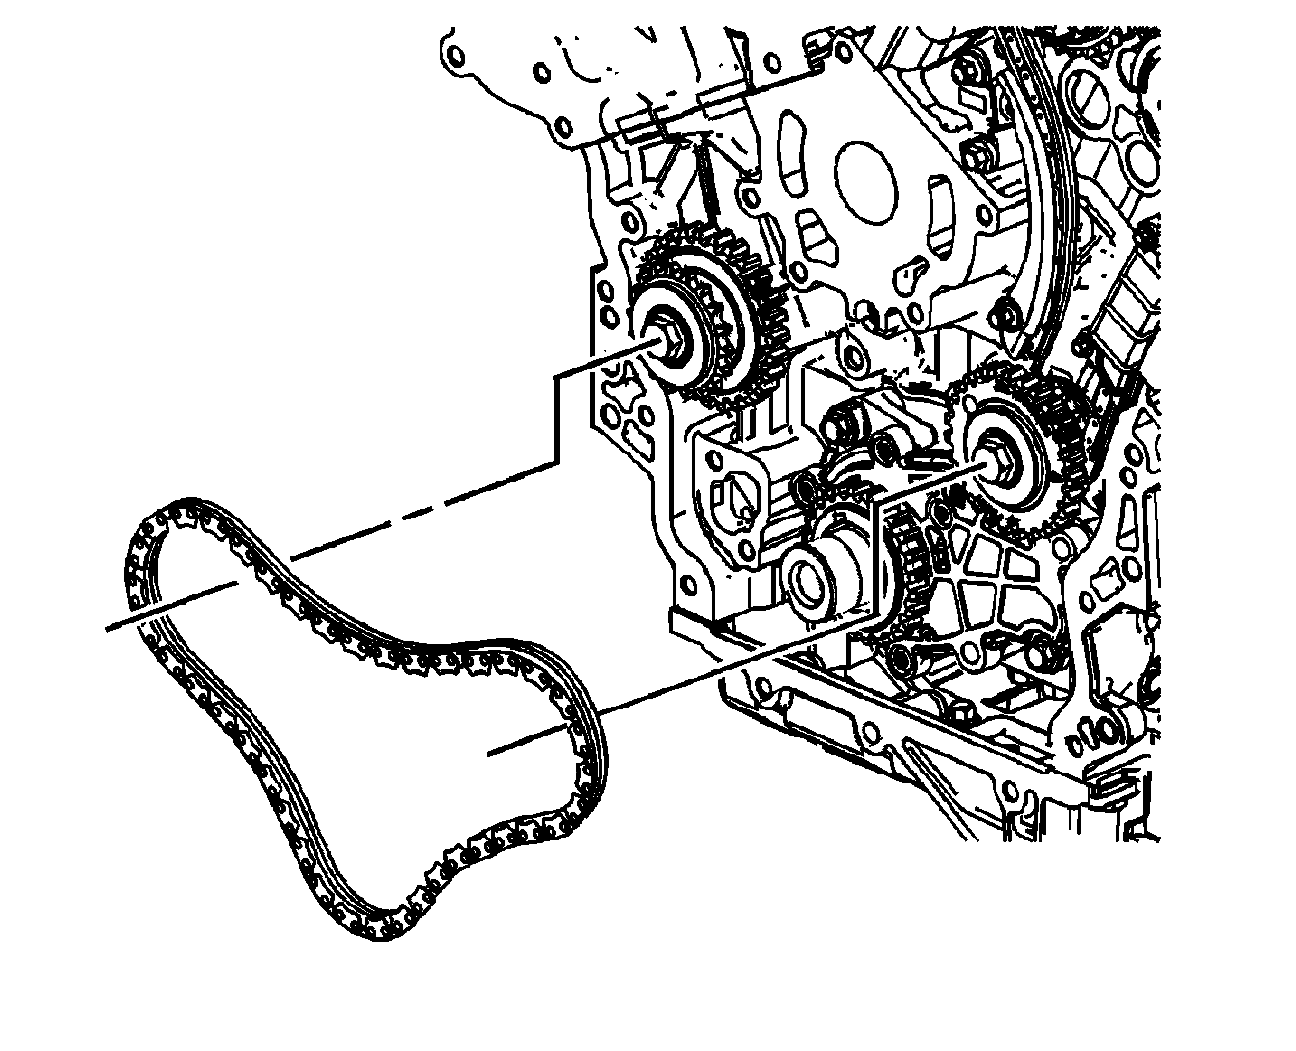 2002 suzuki xl7 engine parts diagram